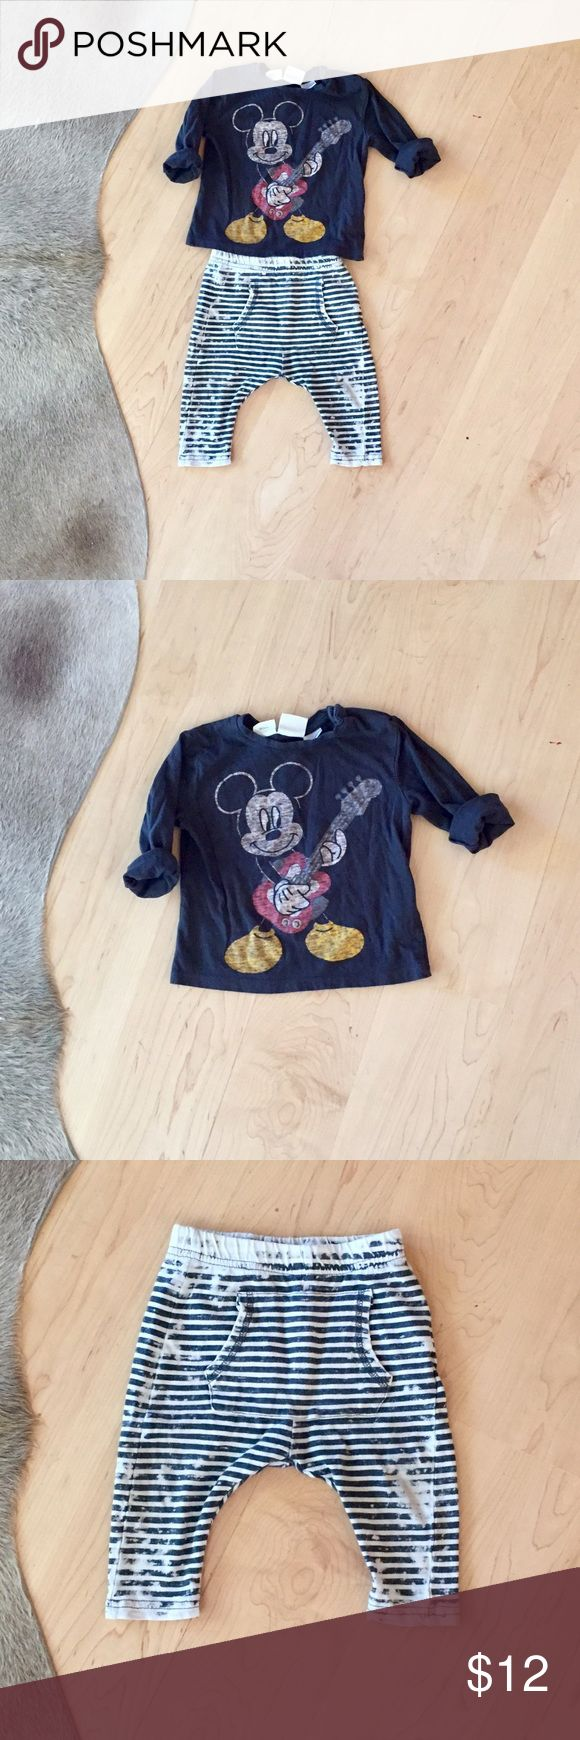 """Zara Baby """"Mickey Rock Star"""" Outfit Zara Baby """"Mickey Rock Star"""" Outfit. Love this little outfit! Loved but lots of life left. Very slight discoloration on the knees of pants. Zara Matching Sets"""